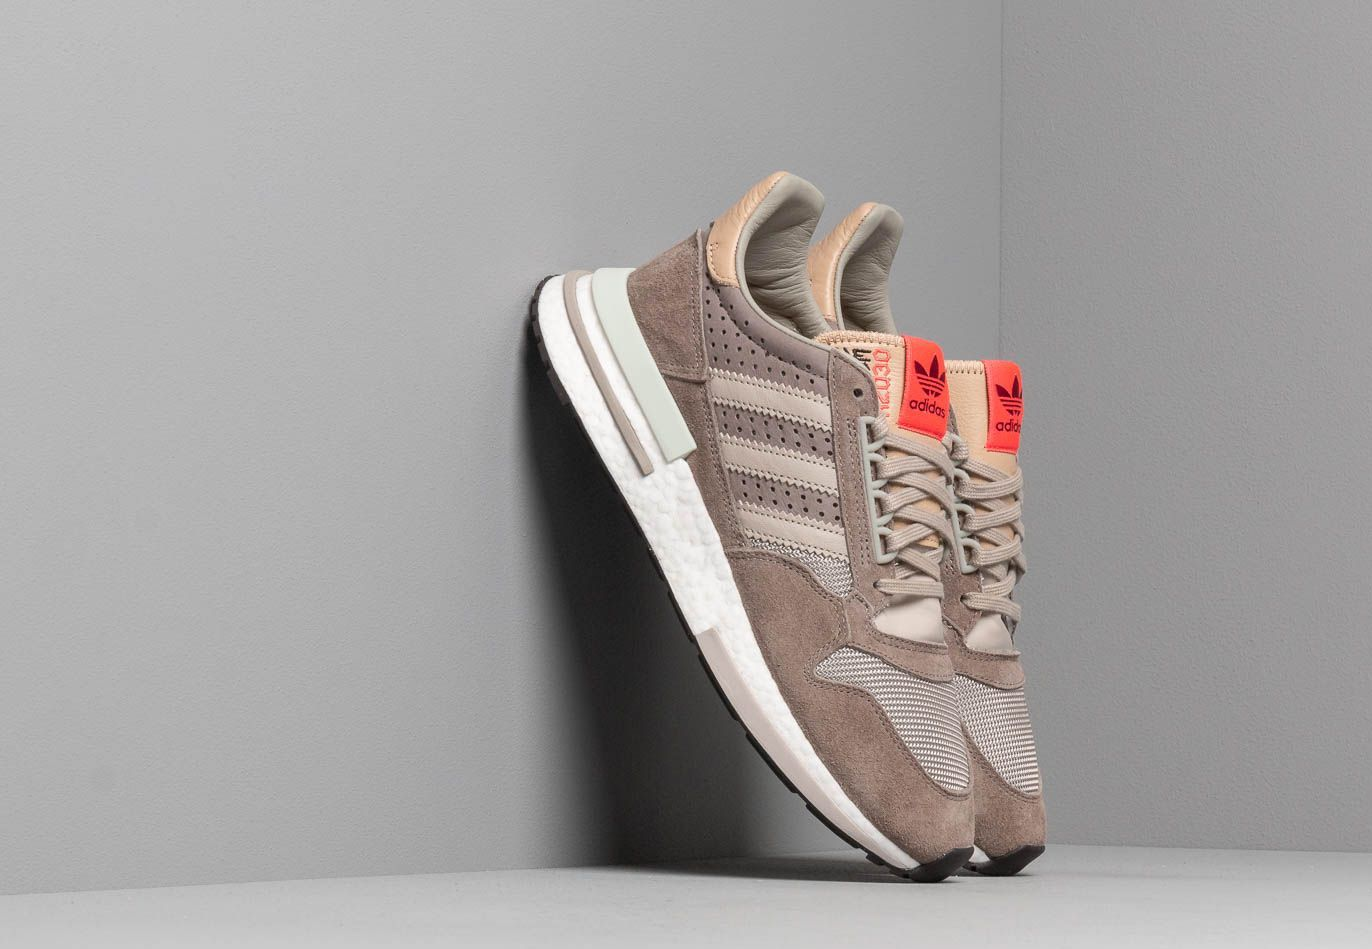 adidas ZX 500 RM Simple Brown/ Light Brown/ Ftw White BD7859